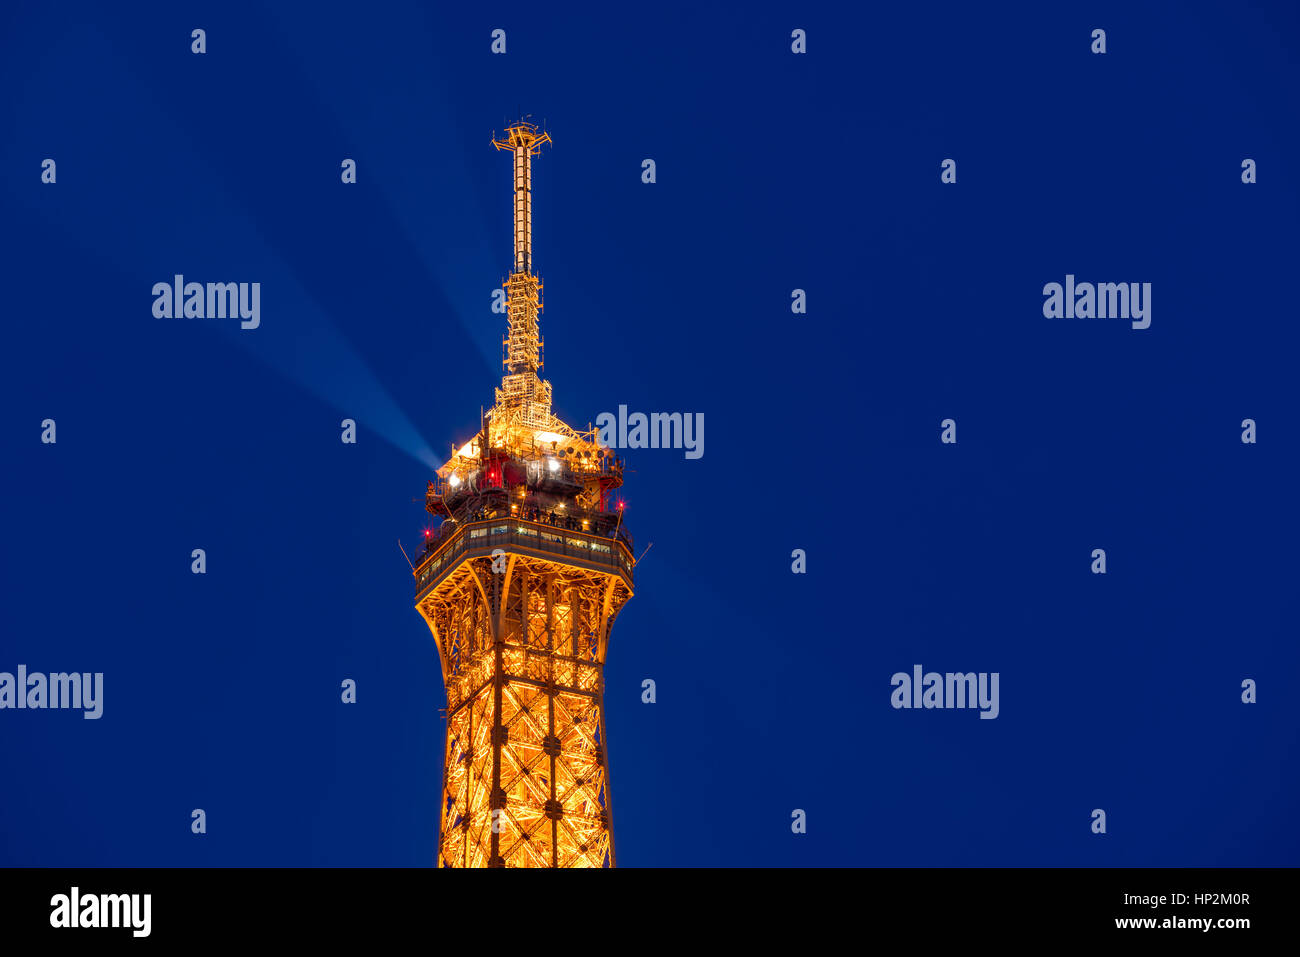 The top of the Eiffel Tower illuminated at twilight. Champs-de-Mars, 7th Arrondissement, Paris, France - Stock Image